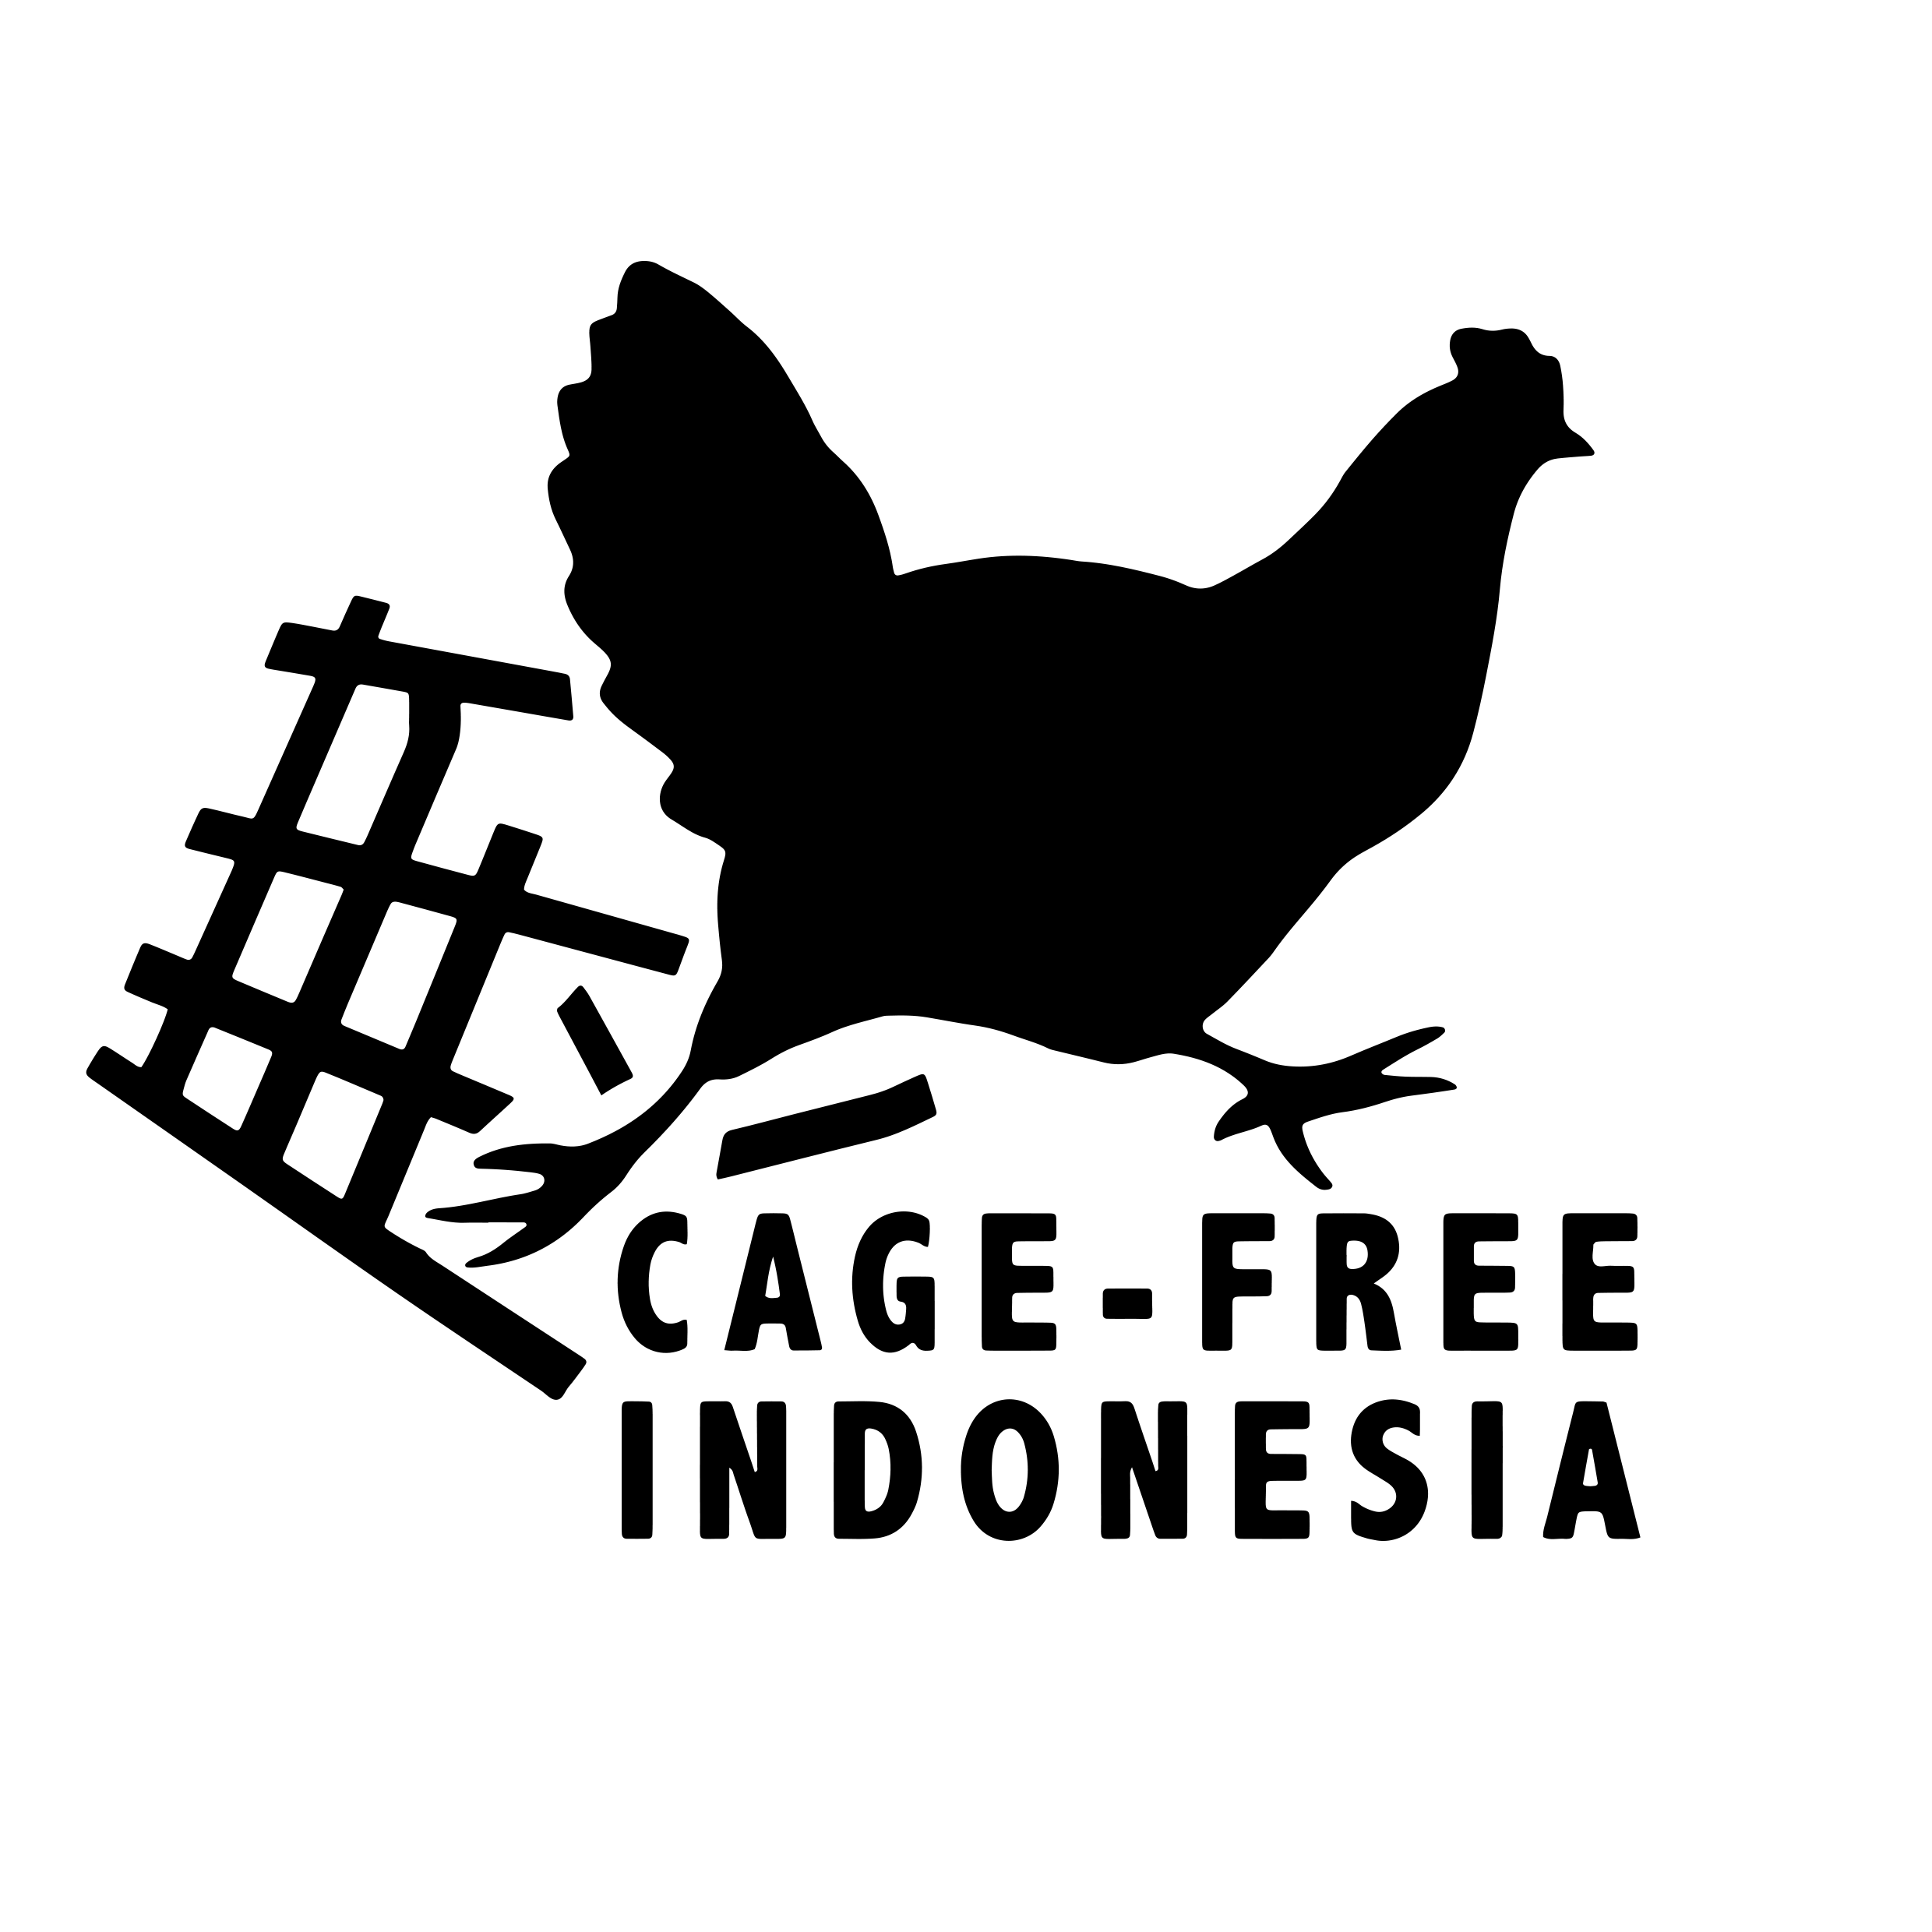 Cage-free Indonesia